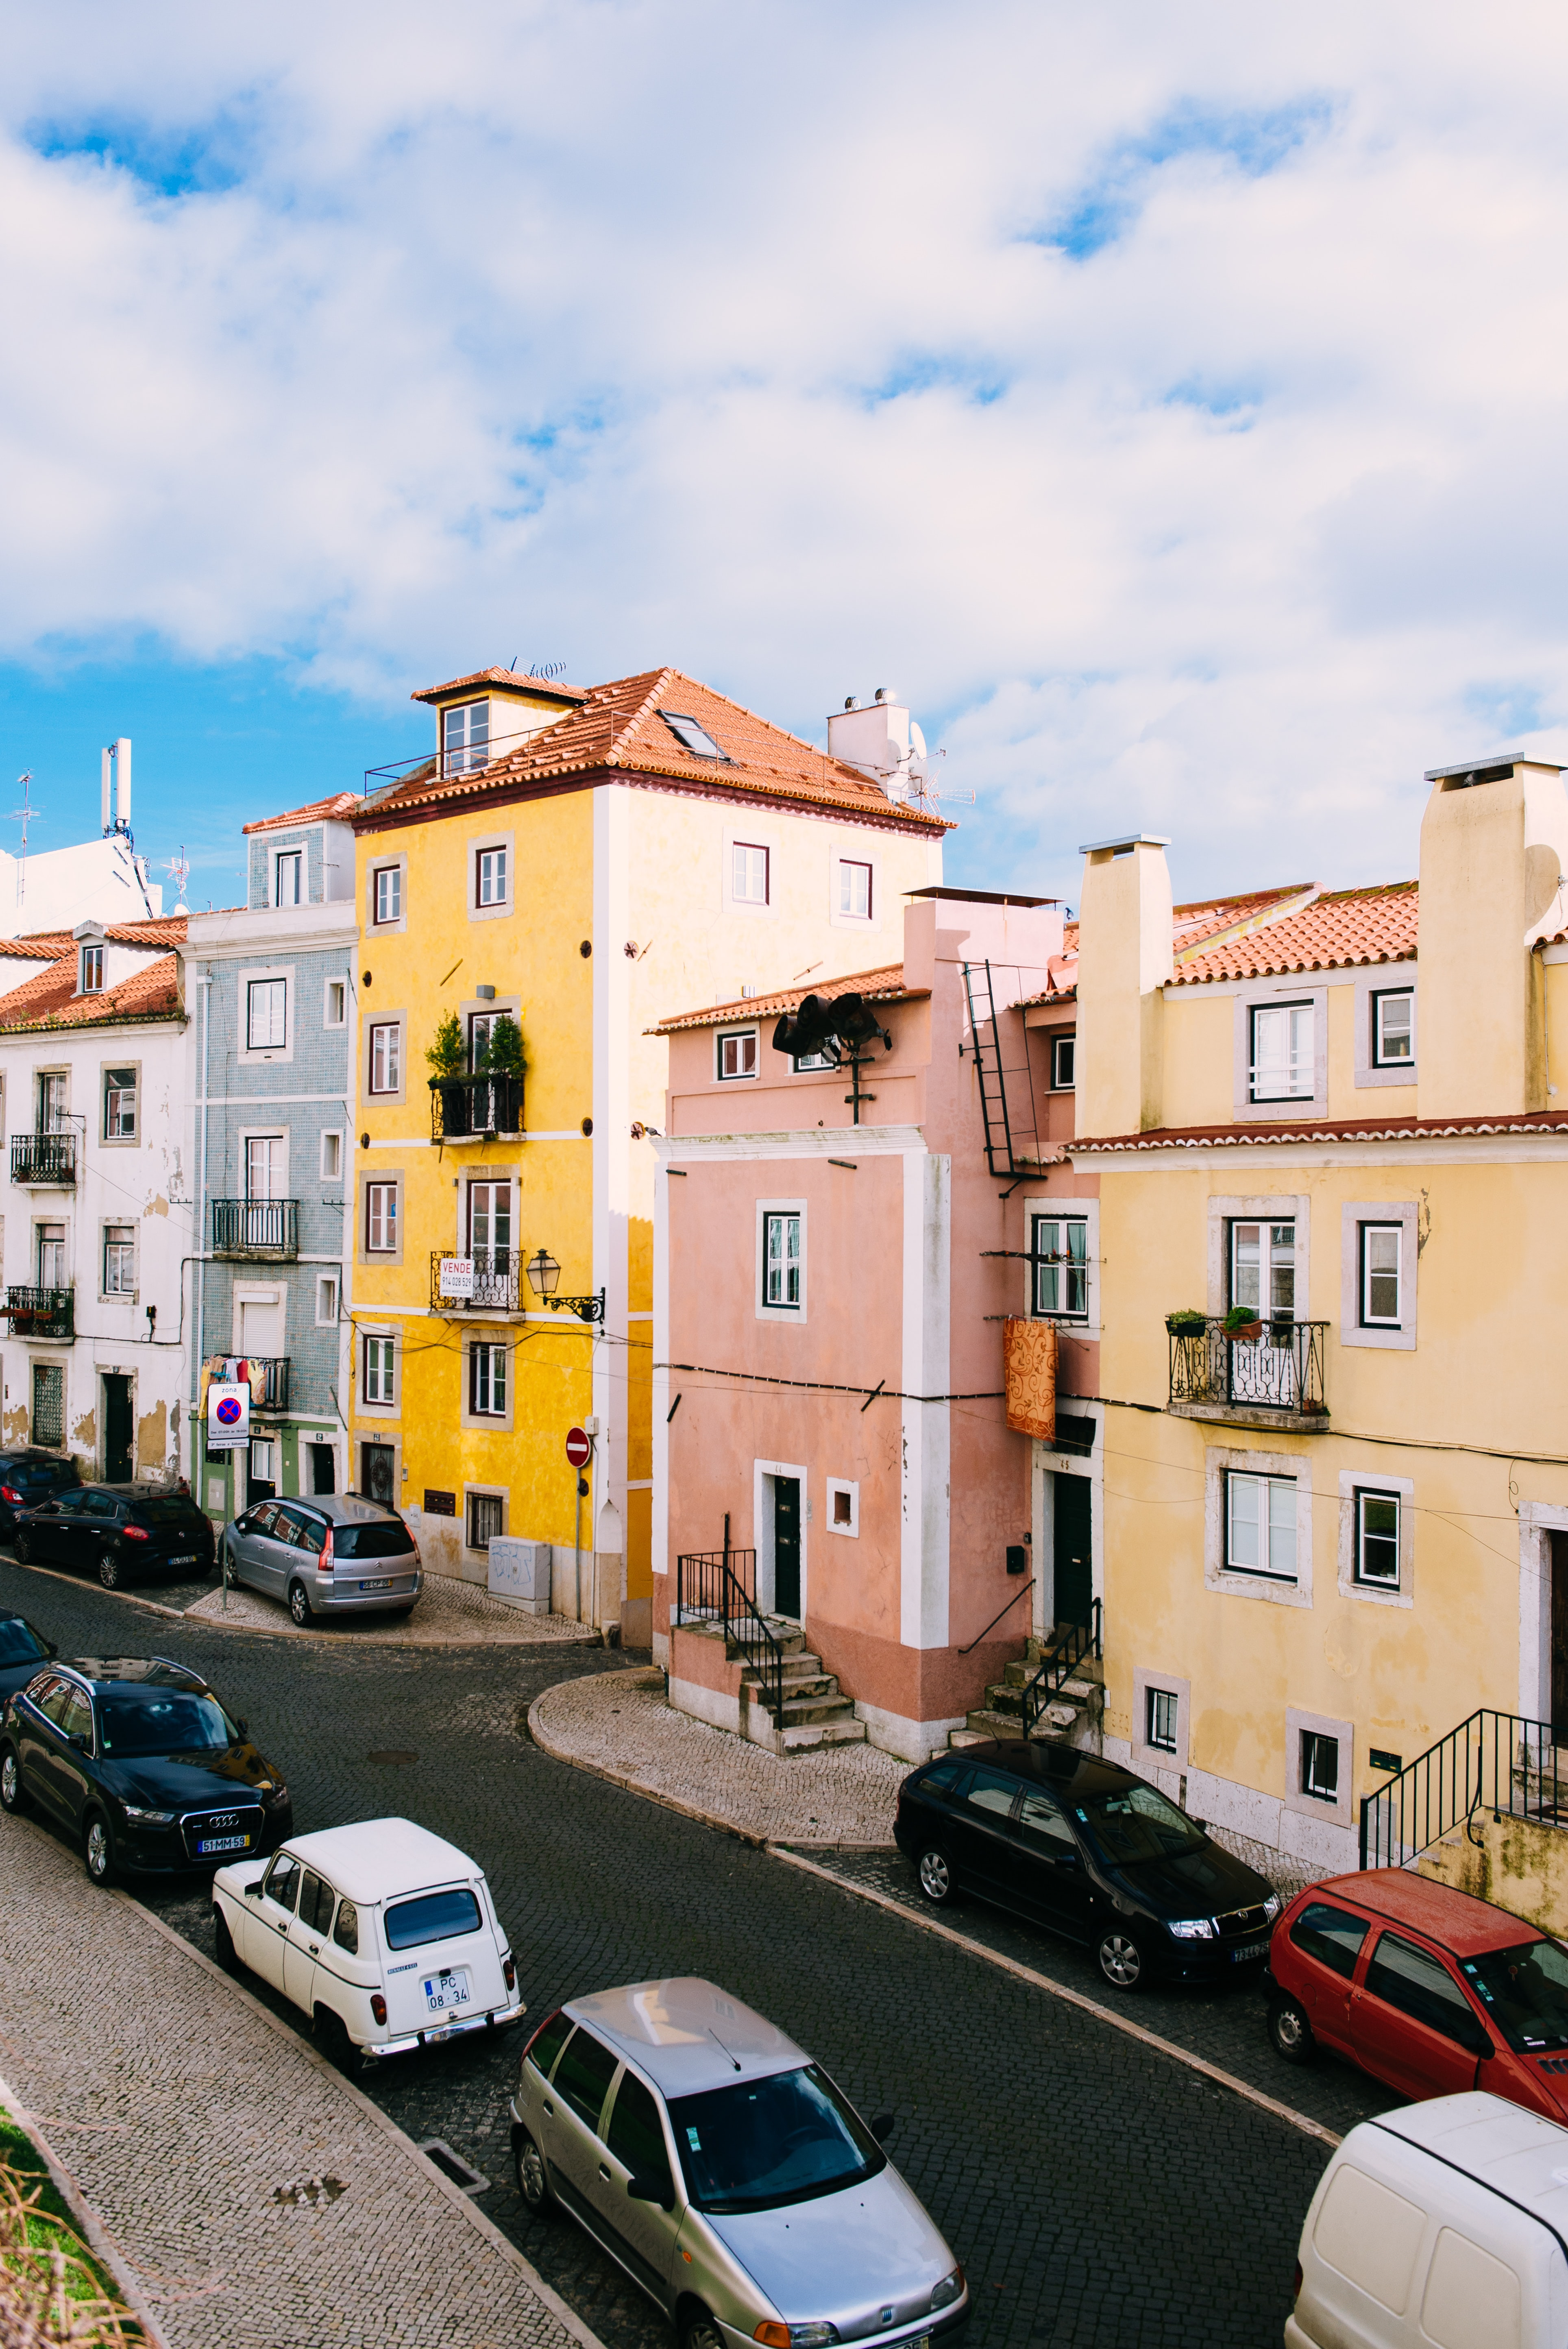 Street with small residential buildings with colorful facades in Lisbon